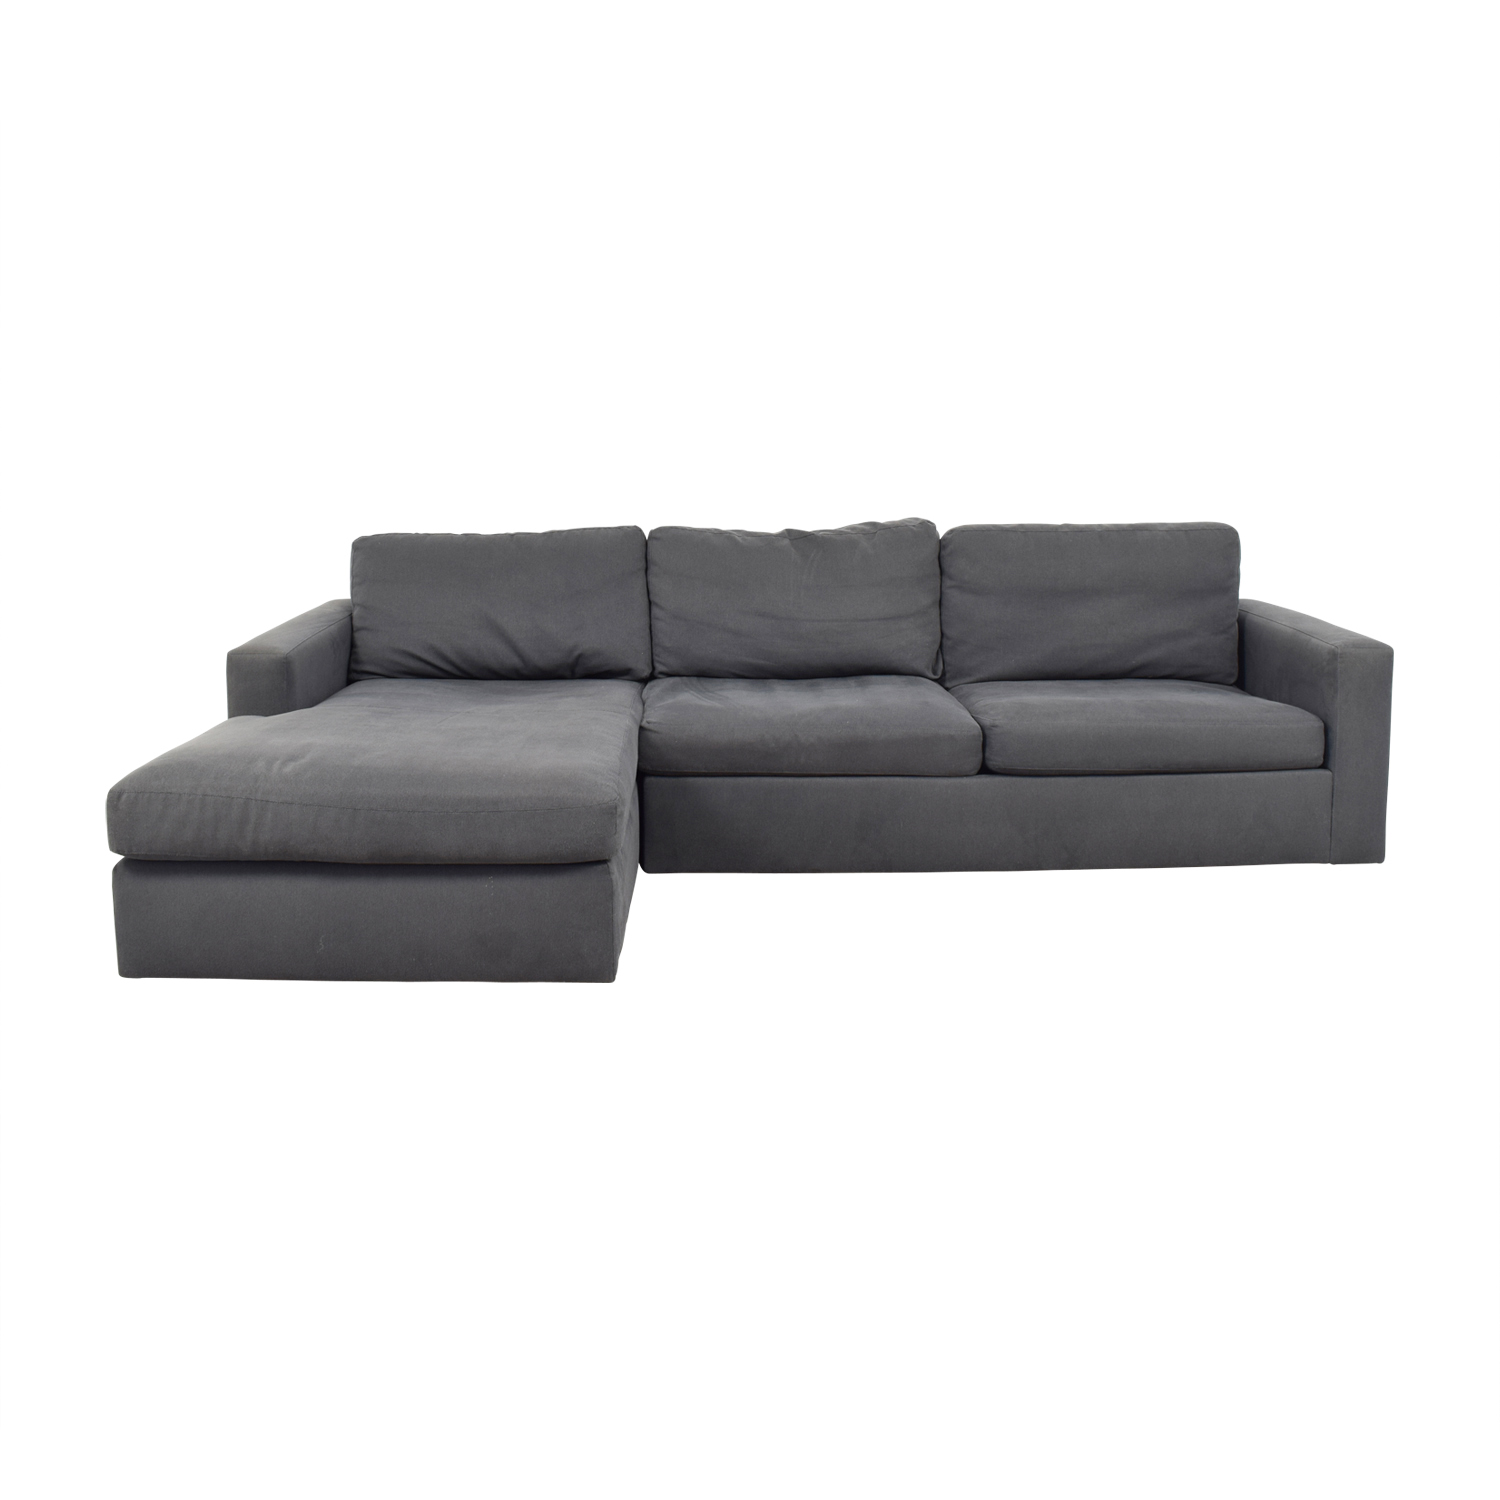 buy Room & Board Taft Custom Grey Left Arm Chaise Sectional Room & Board